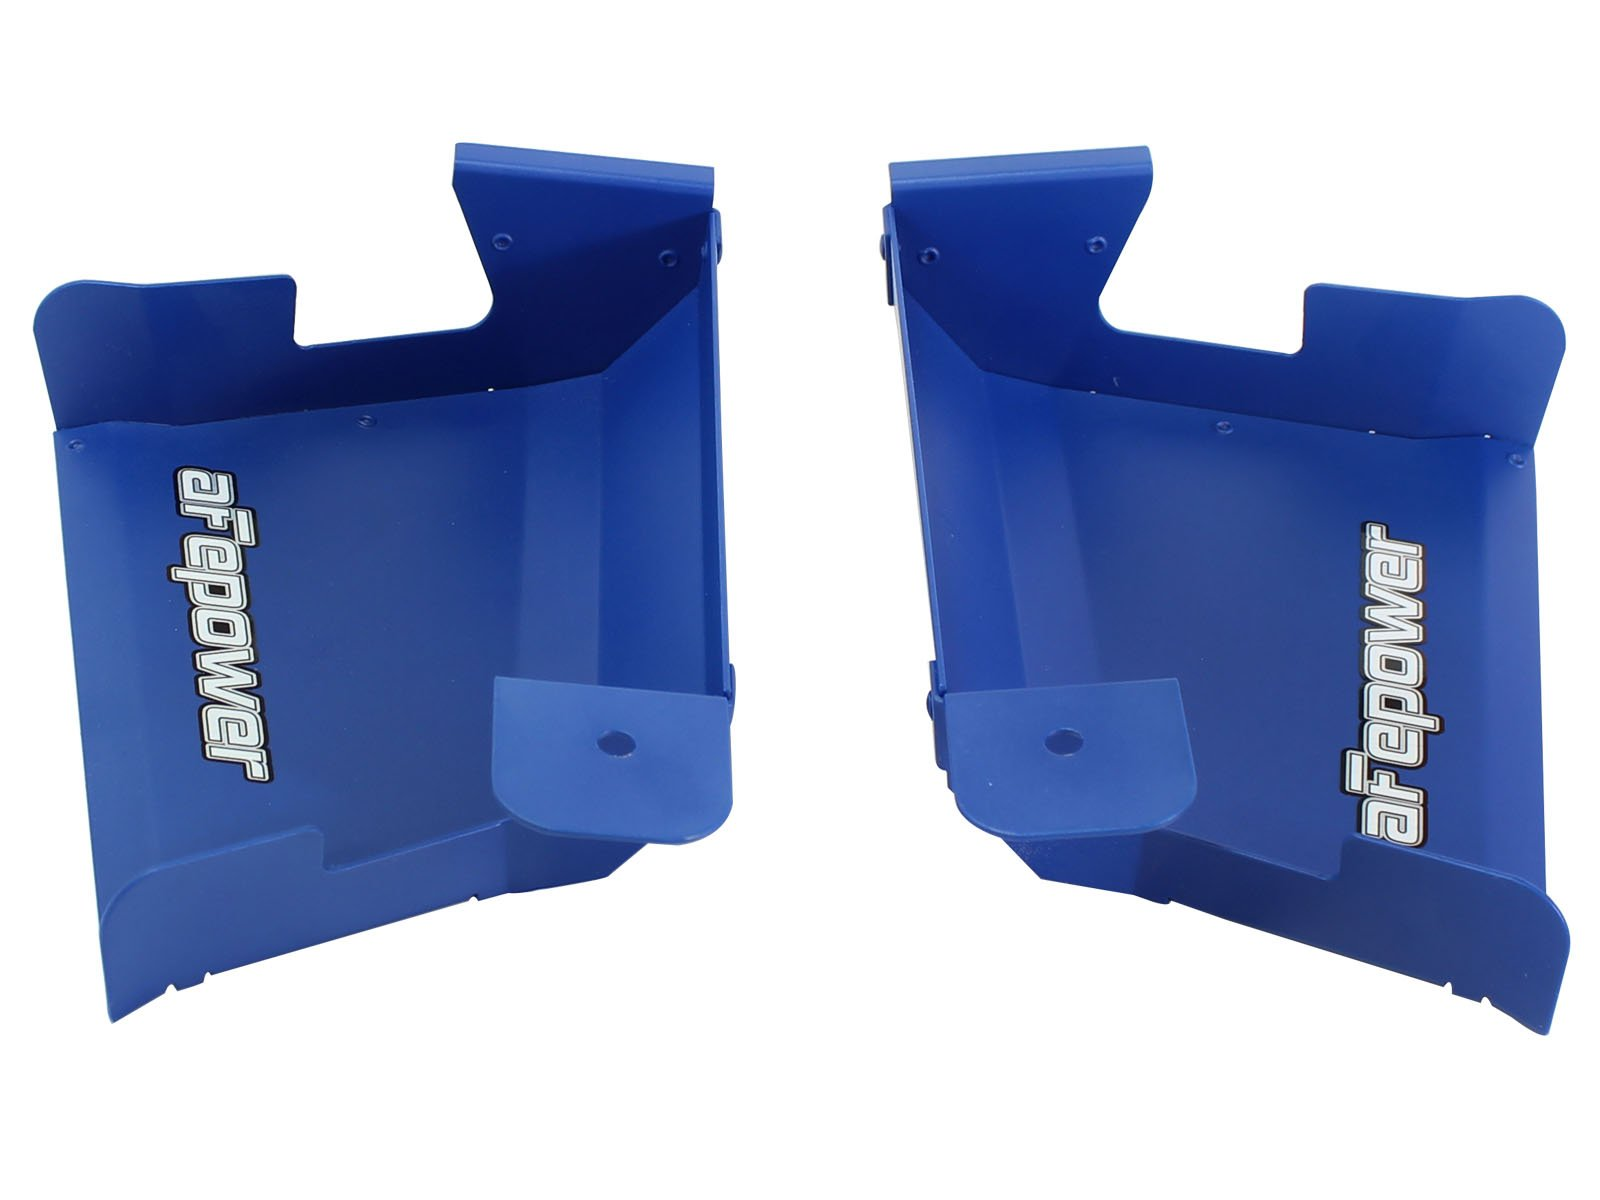 aFe Power Magnum FORCE 54-11478-L BMW 3-Series (E9x) Intake System Scoops (Matte Blue) by aFe Power (Image #4)